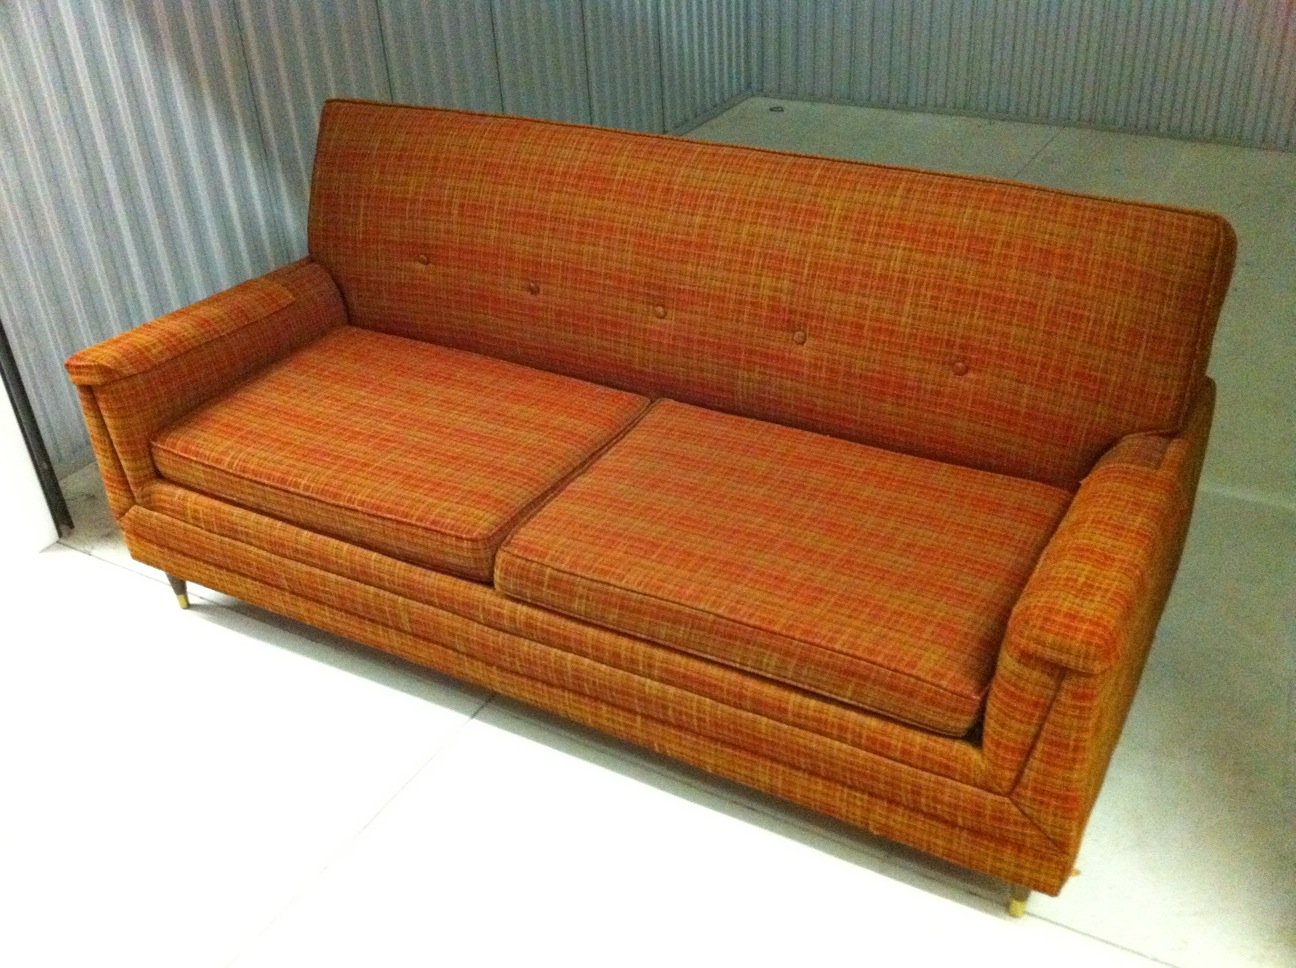 a sofa in the forties how to fit and dining table small living room junk2funk 1940 39s masquerader bed by flexsteel